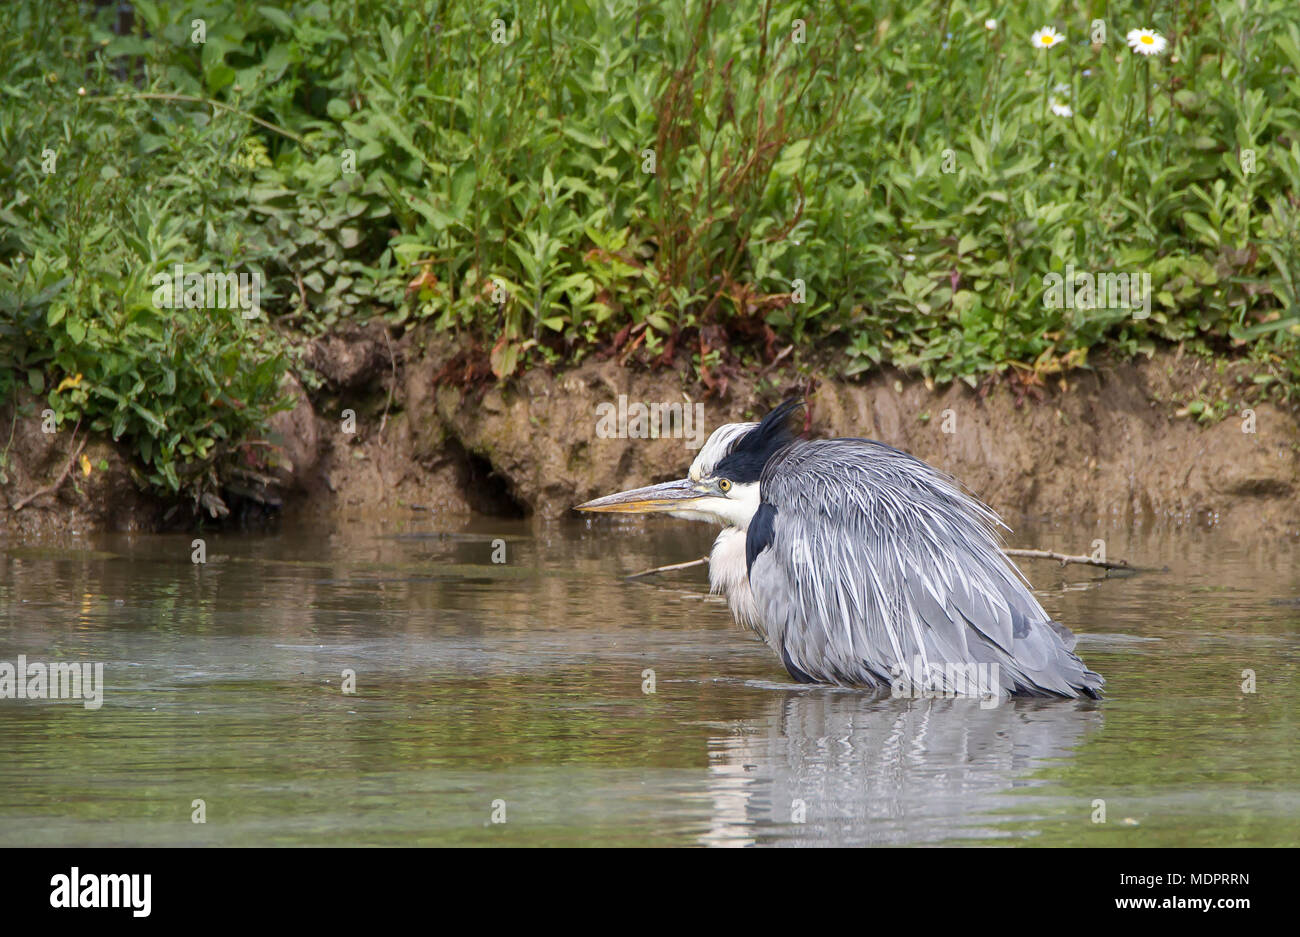 Detailed close-up side view of isolated, British grey heron (Ardea cinerea) wading in water, crouching down, creeping stealthily, hunting for fish. - Stock Image